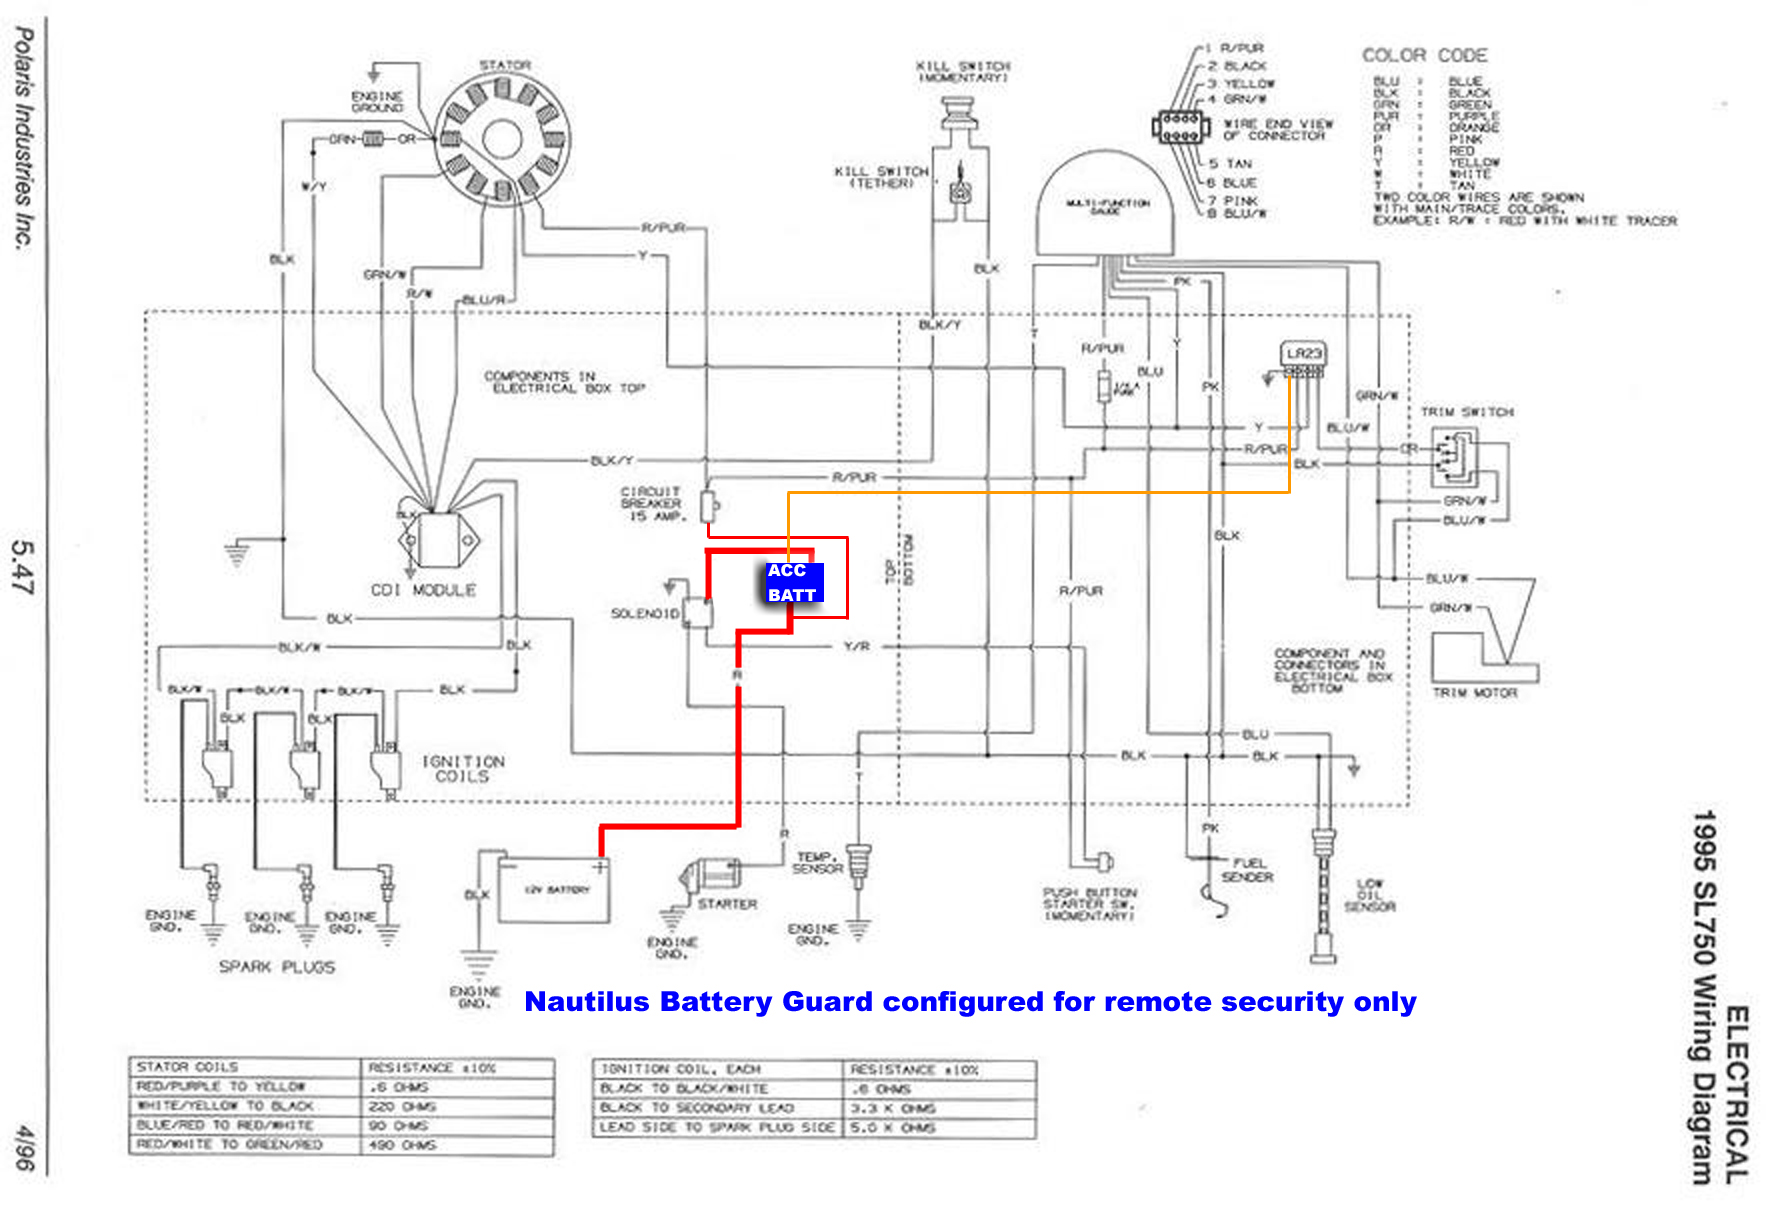 polaris 750 slt wiring diagram polaris sportsman 400